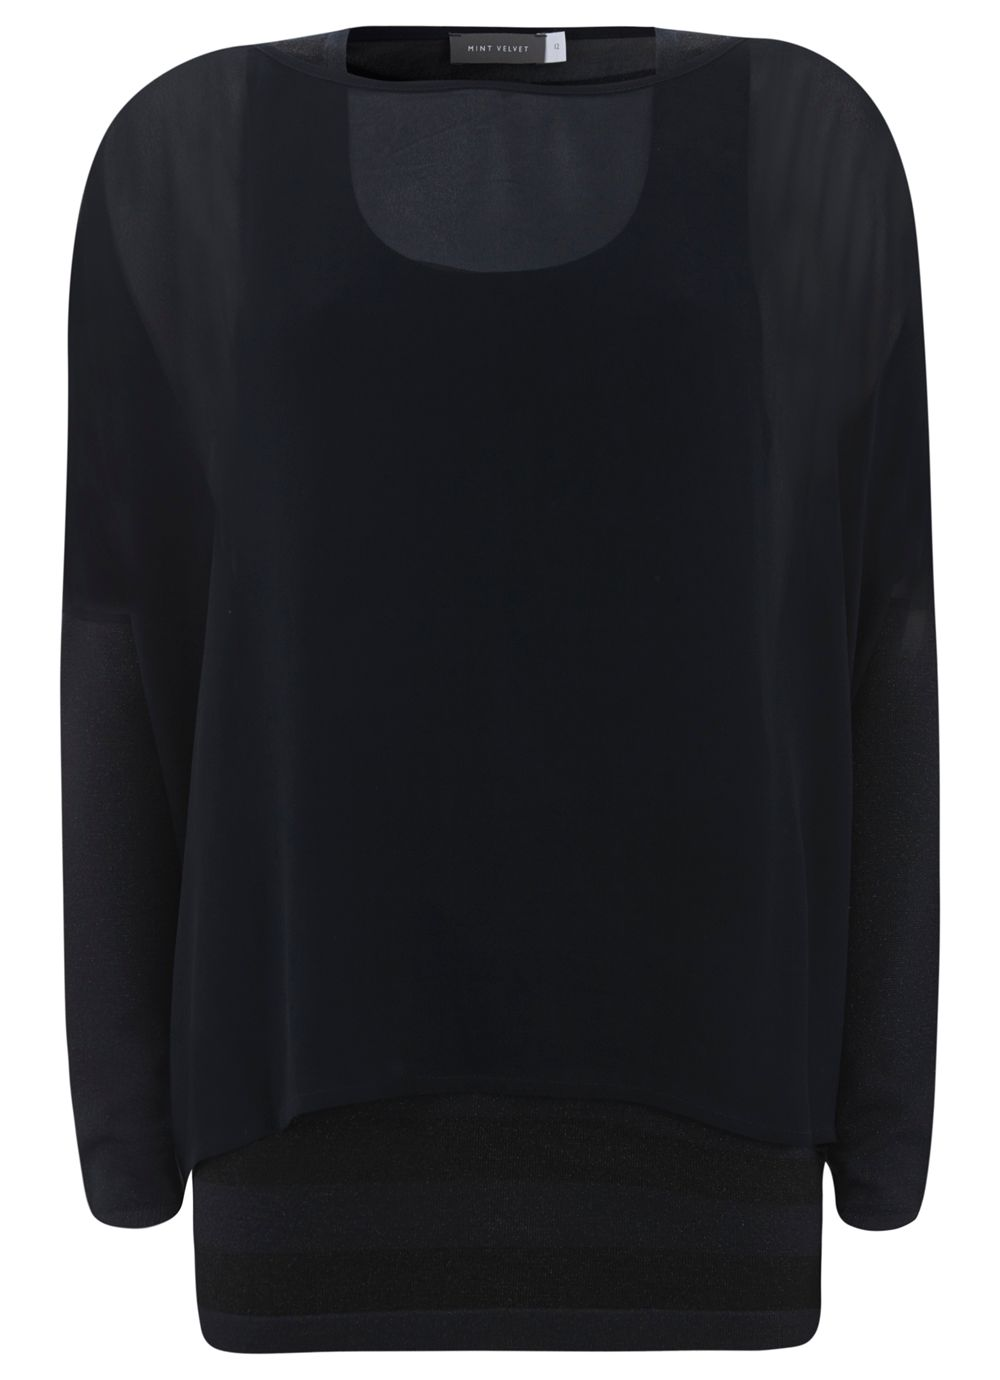 Navy & Black Double Layer Knit